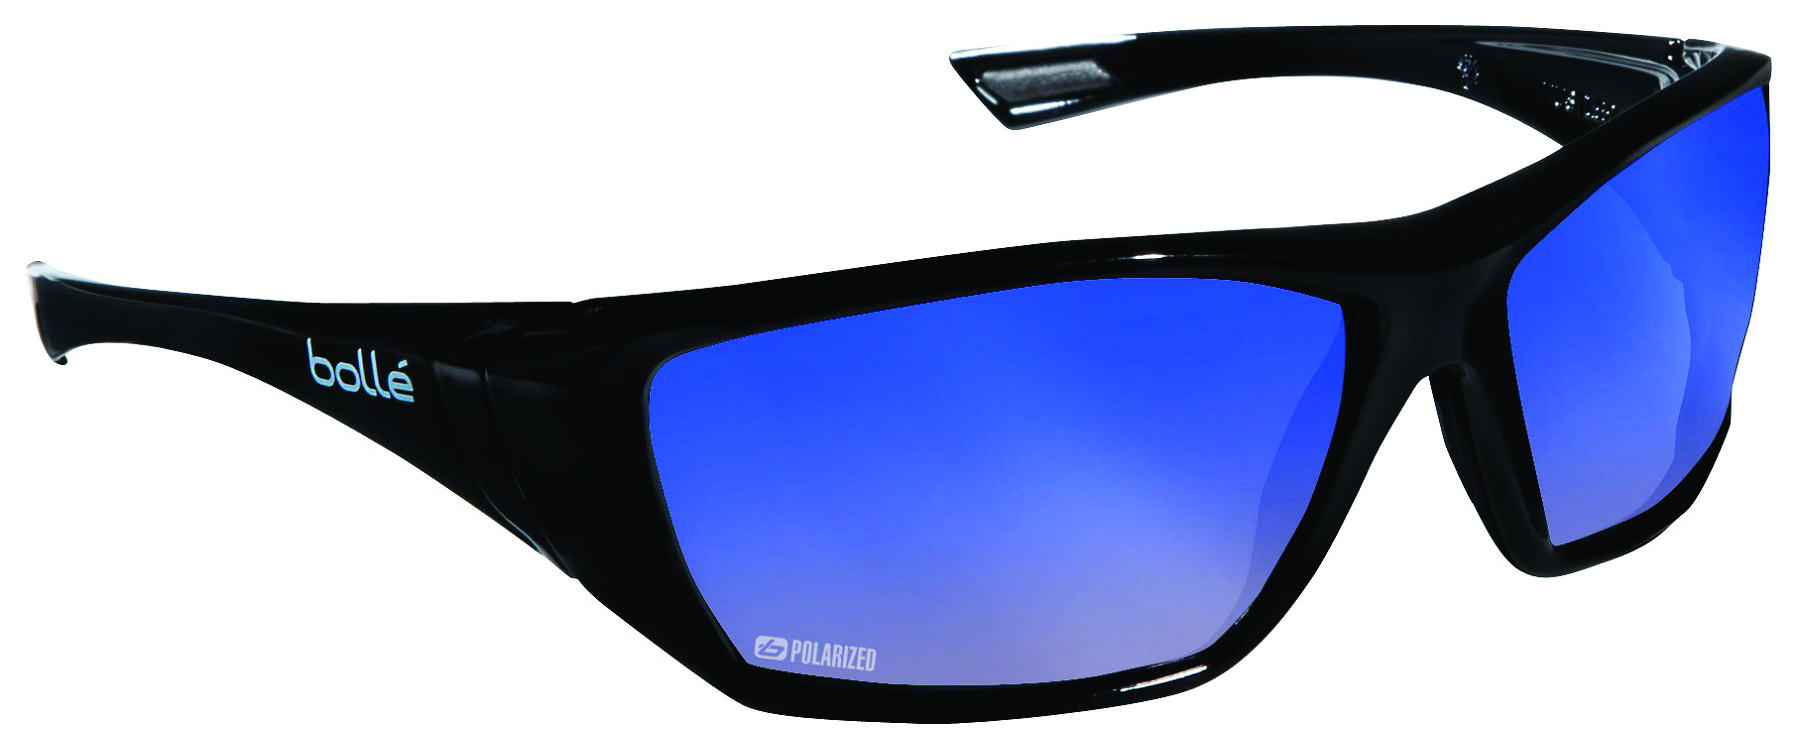 40149 - Hustler Safety Glasses-Shiny Black - Smoke Lens Anti-Fog/Anti-Scratch Lens Coating-----UOM: 1/EA